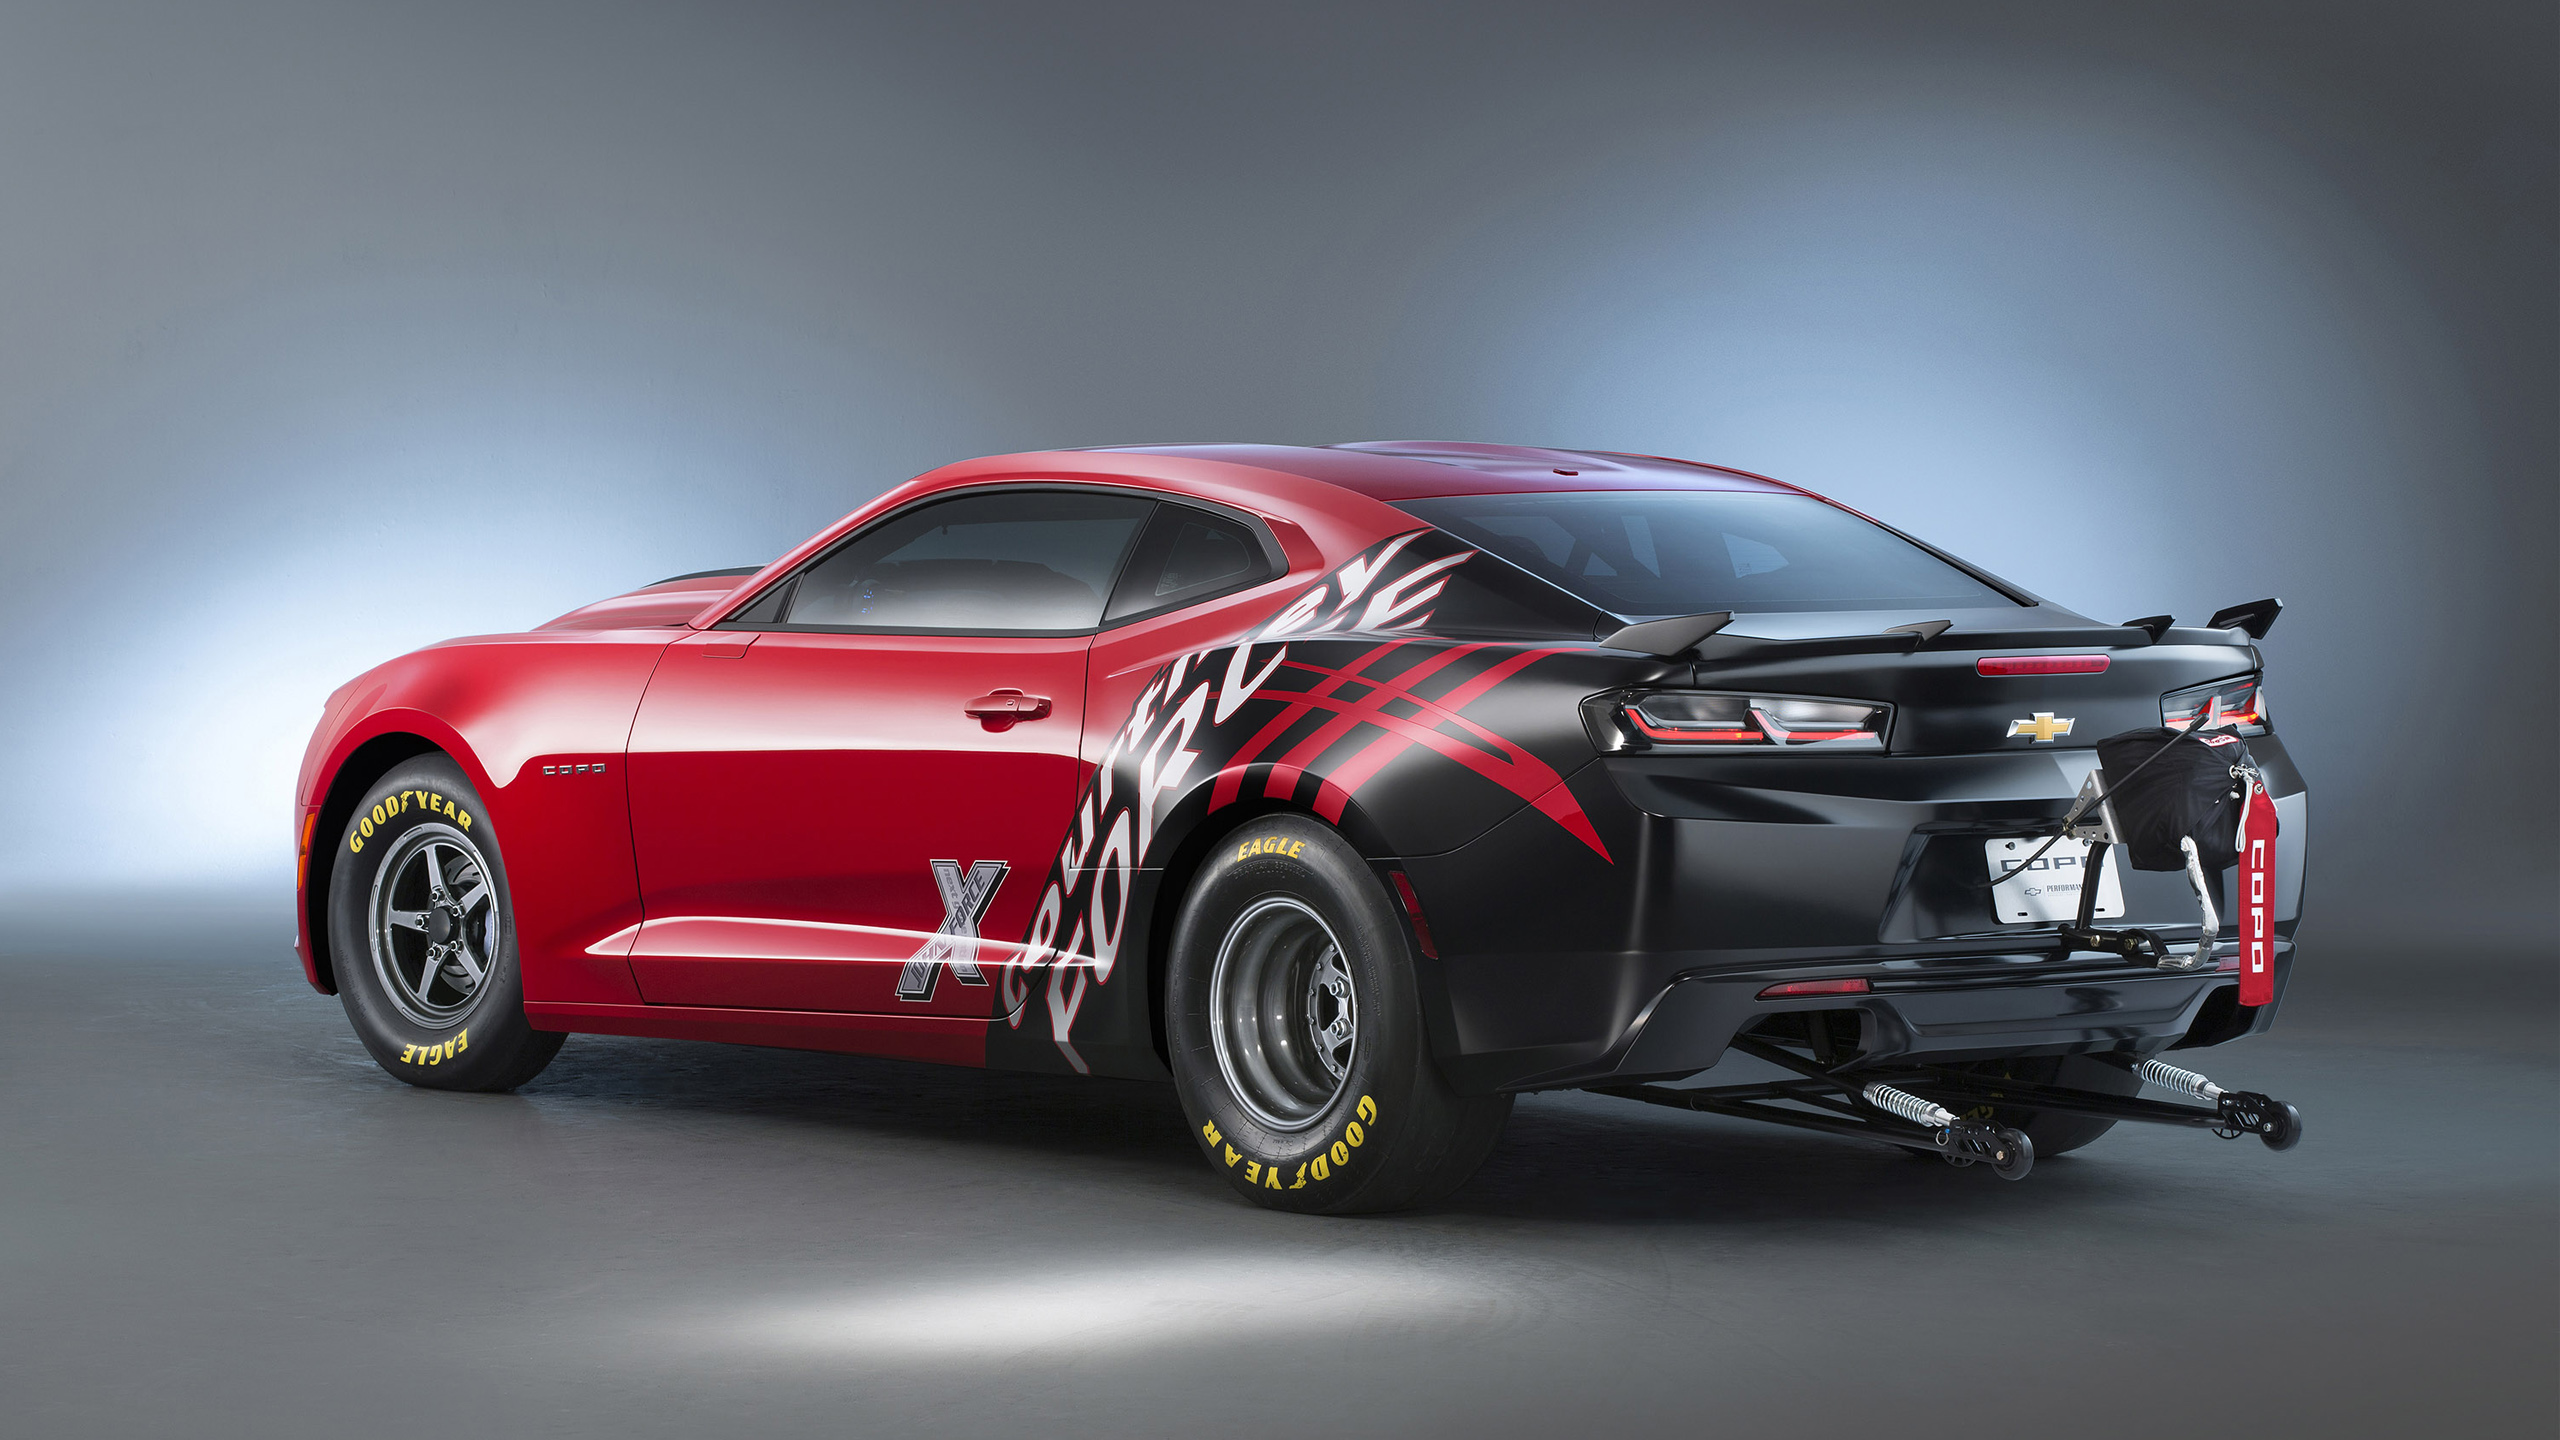 2016 chevrolet copo camaro wallpaper | hd car wallpapers | id #6125